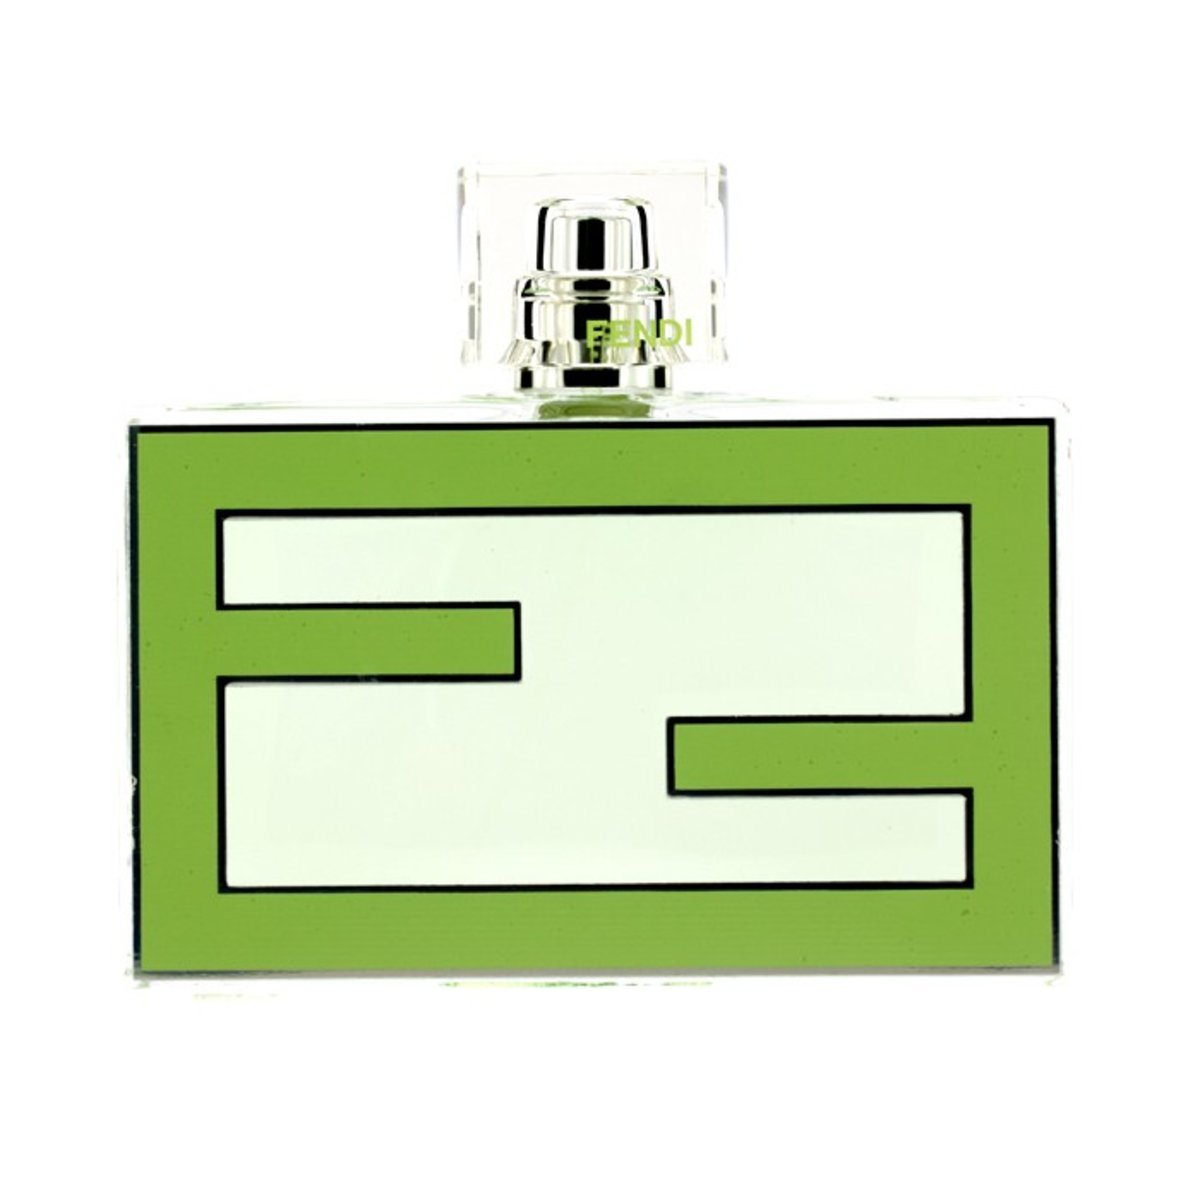 Fan Di Fendi Eau Fraiche Eau De Toilette Spary  -[Parallel Import Product]